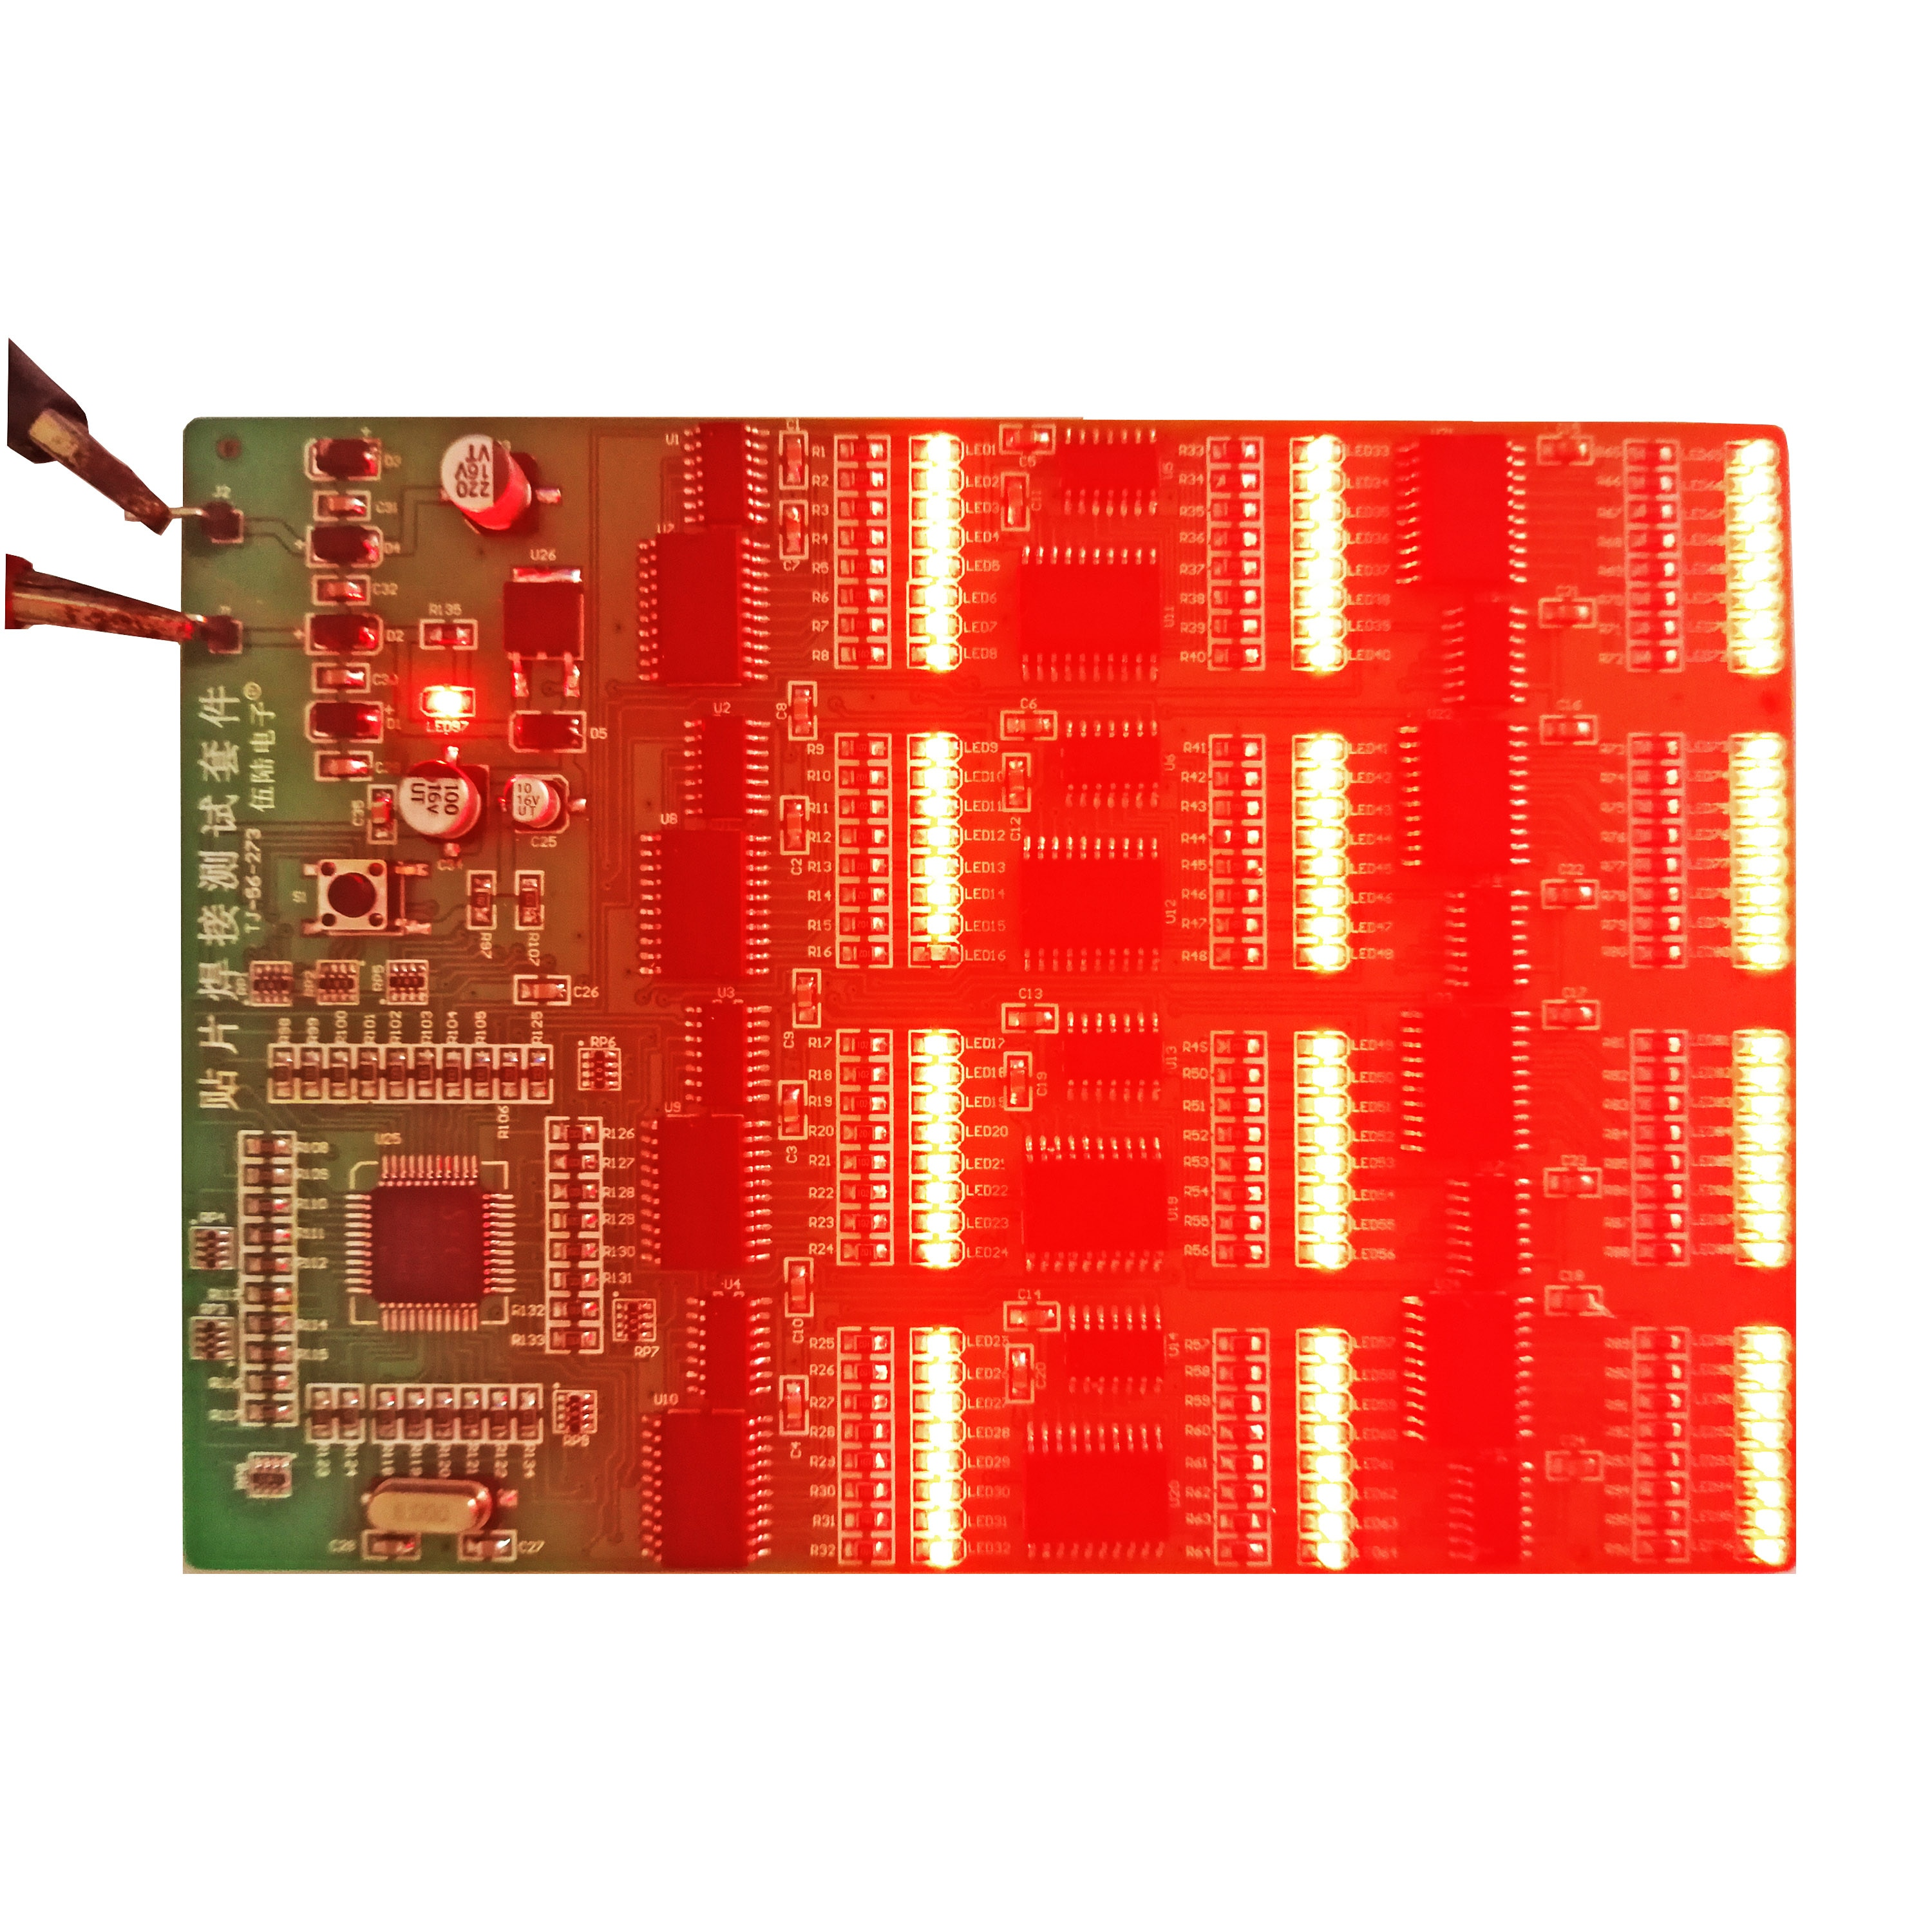 300 SMD component soldering test kits High-strength practice board Skill contest PCB soldering